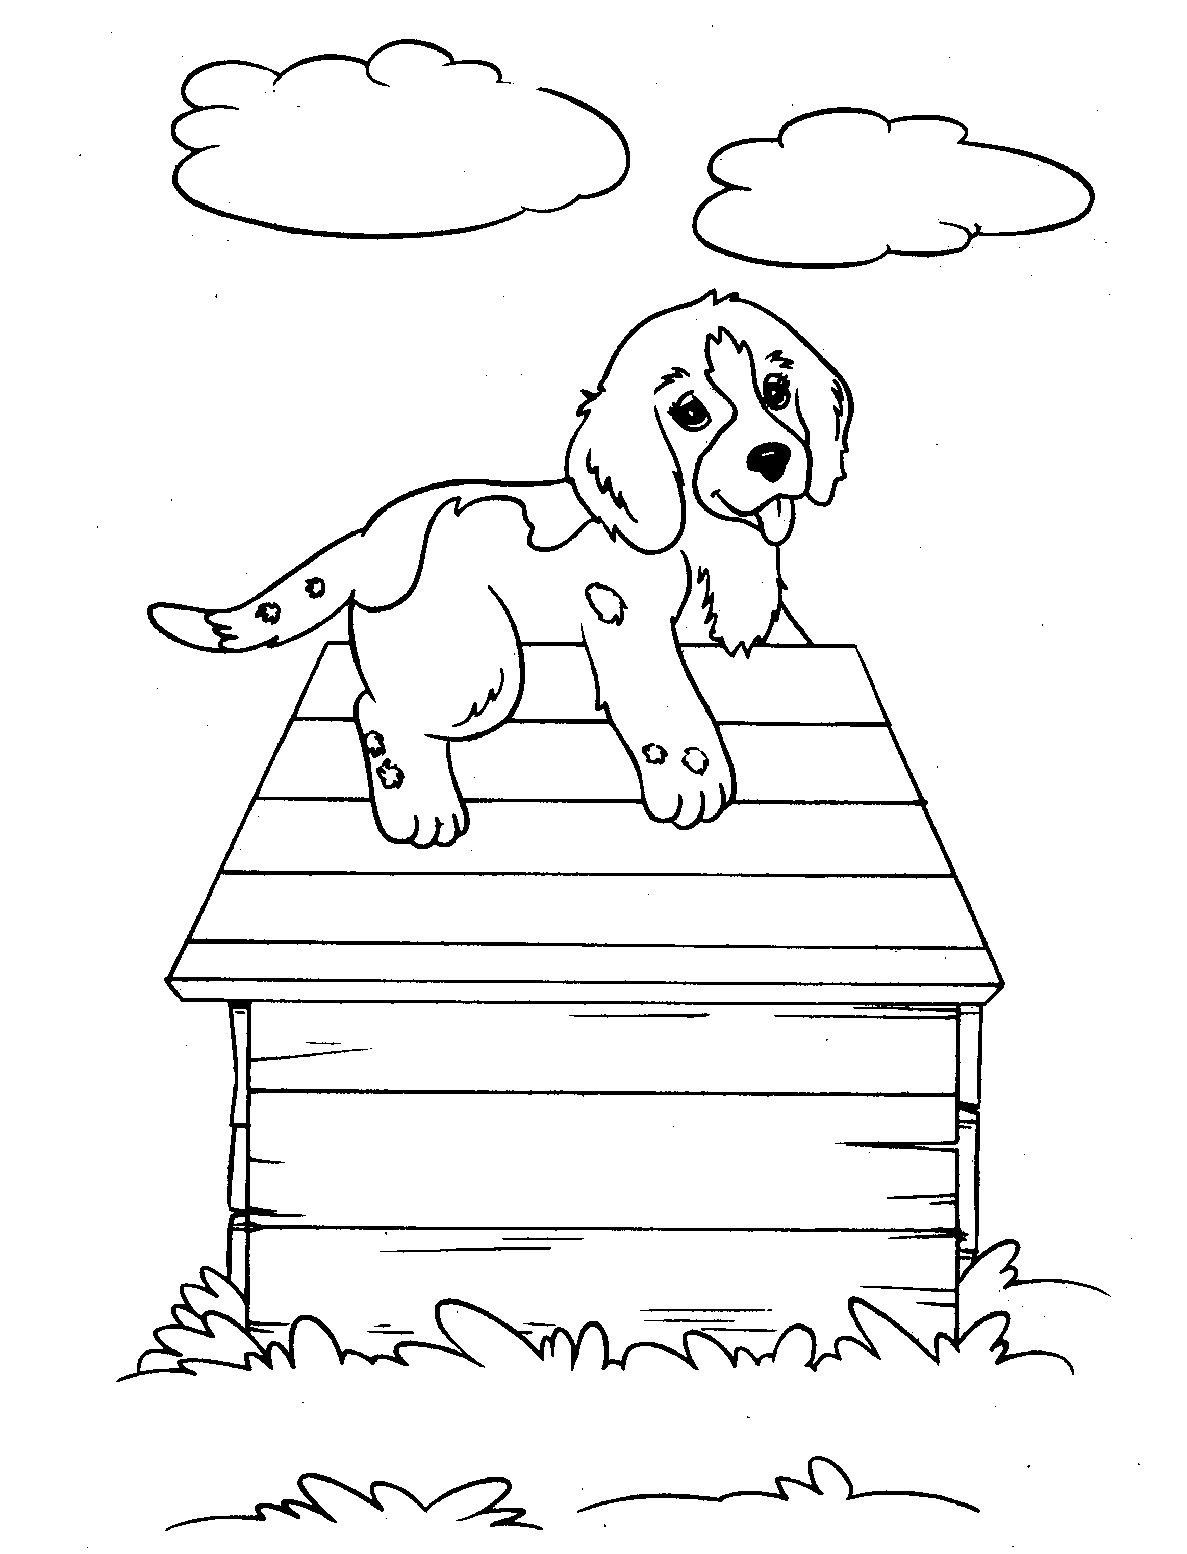 Free Printable Puppies Coloring Pages For Kids Dog Coloring Page